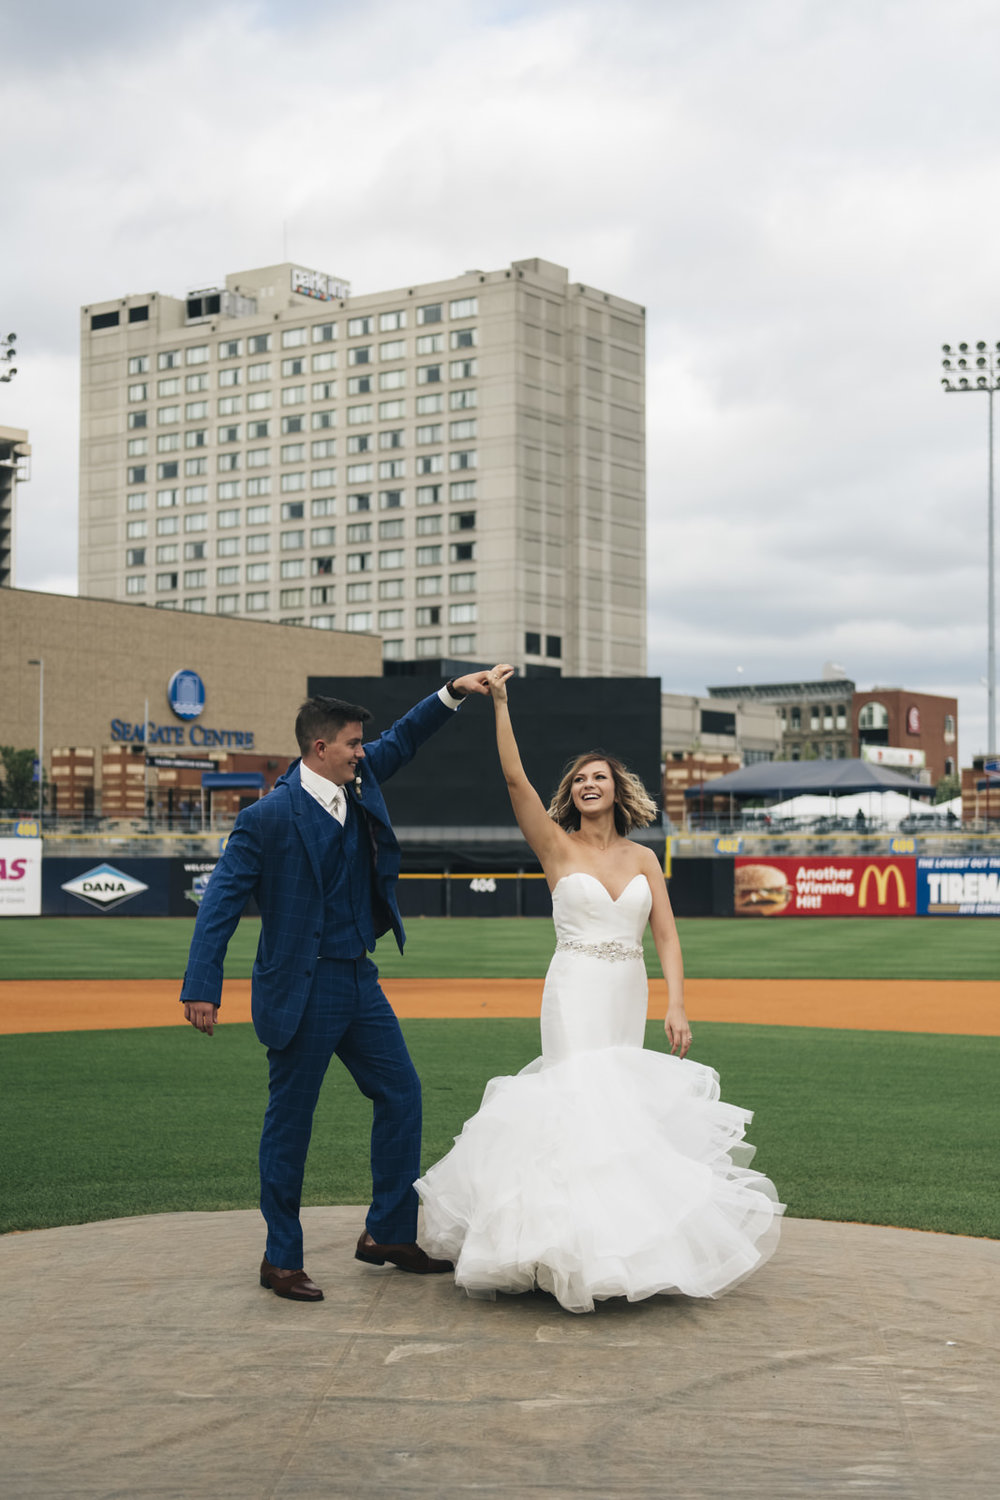 Bride and groom wedding photography in the Toledo Mudhens Stadium.